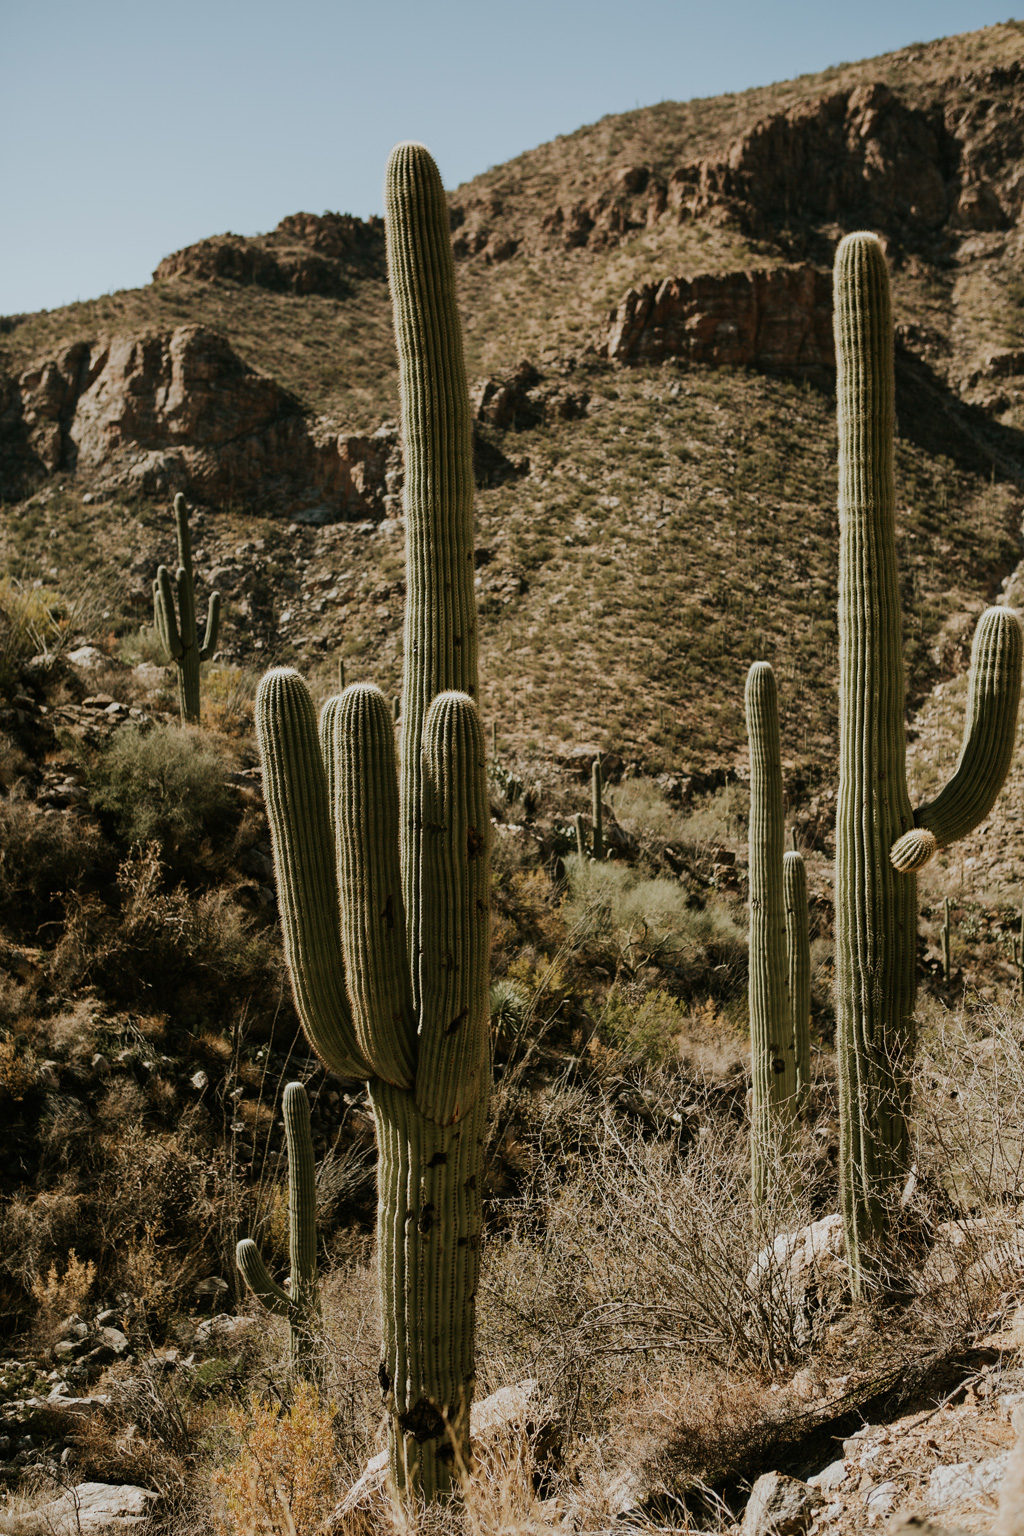 CindyGiovagnoli_Tucson_Arizona_Sabino_Canyon_Phone_Line_Trail_Uinta_Brewing_saguaro_cactus_desert_hiking-004.jpg